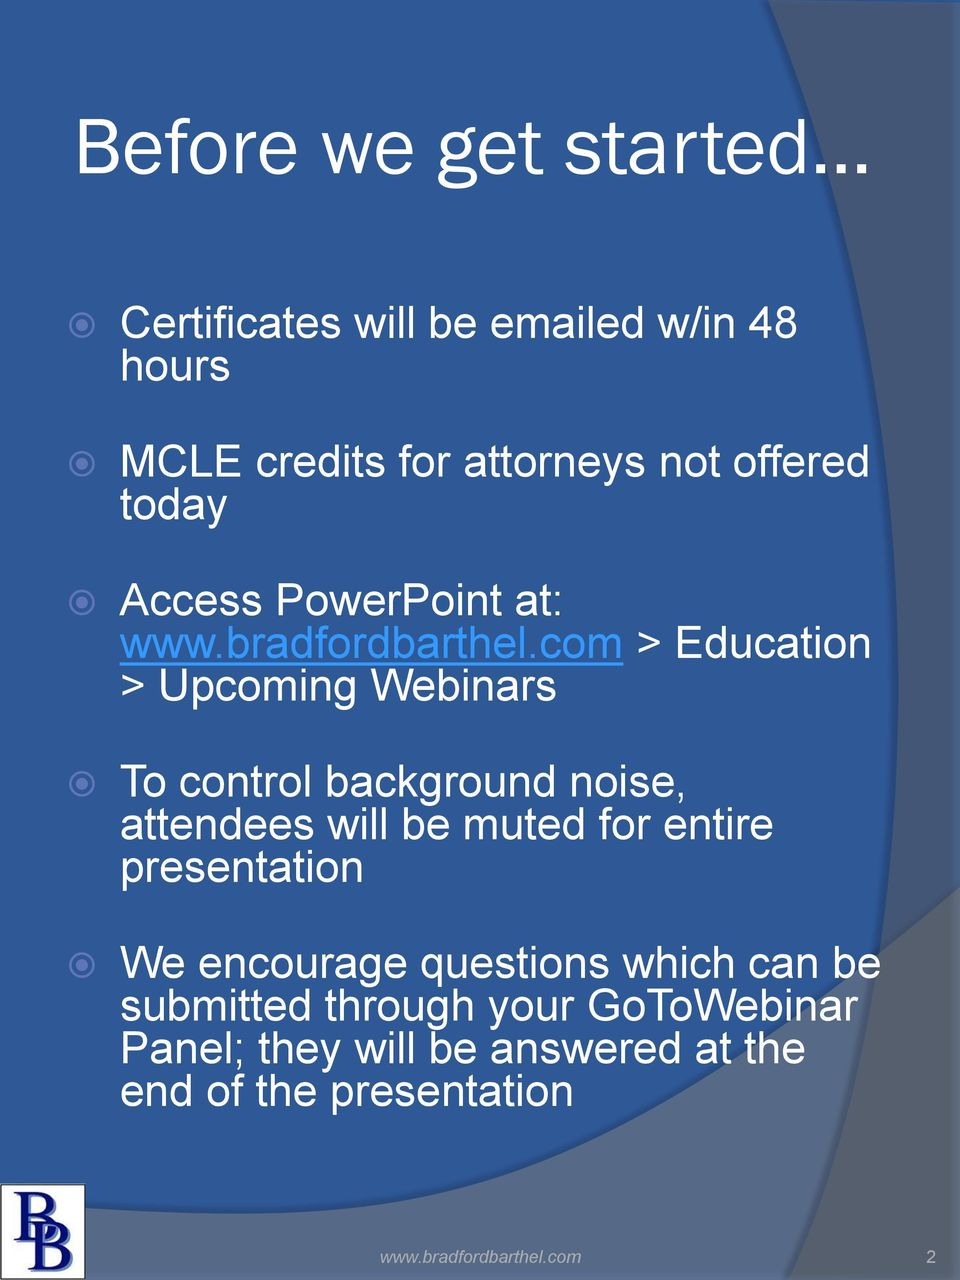 com > Education > Upcoming Webinars To control background noise, attendees will be muted for entire